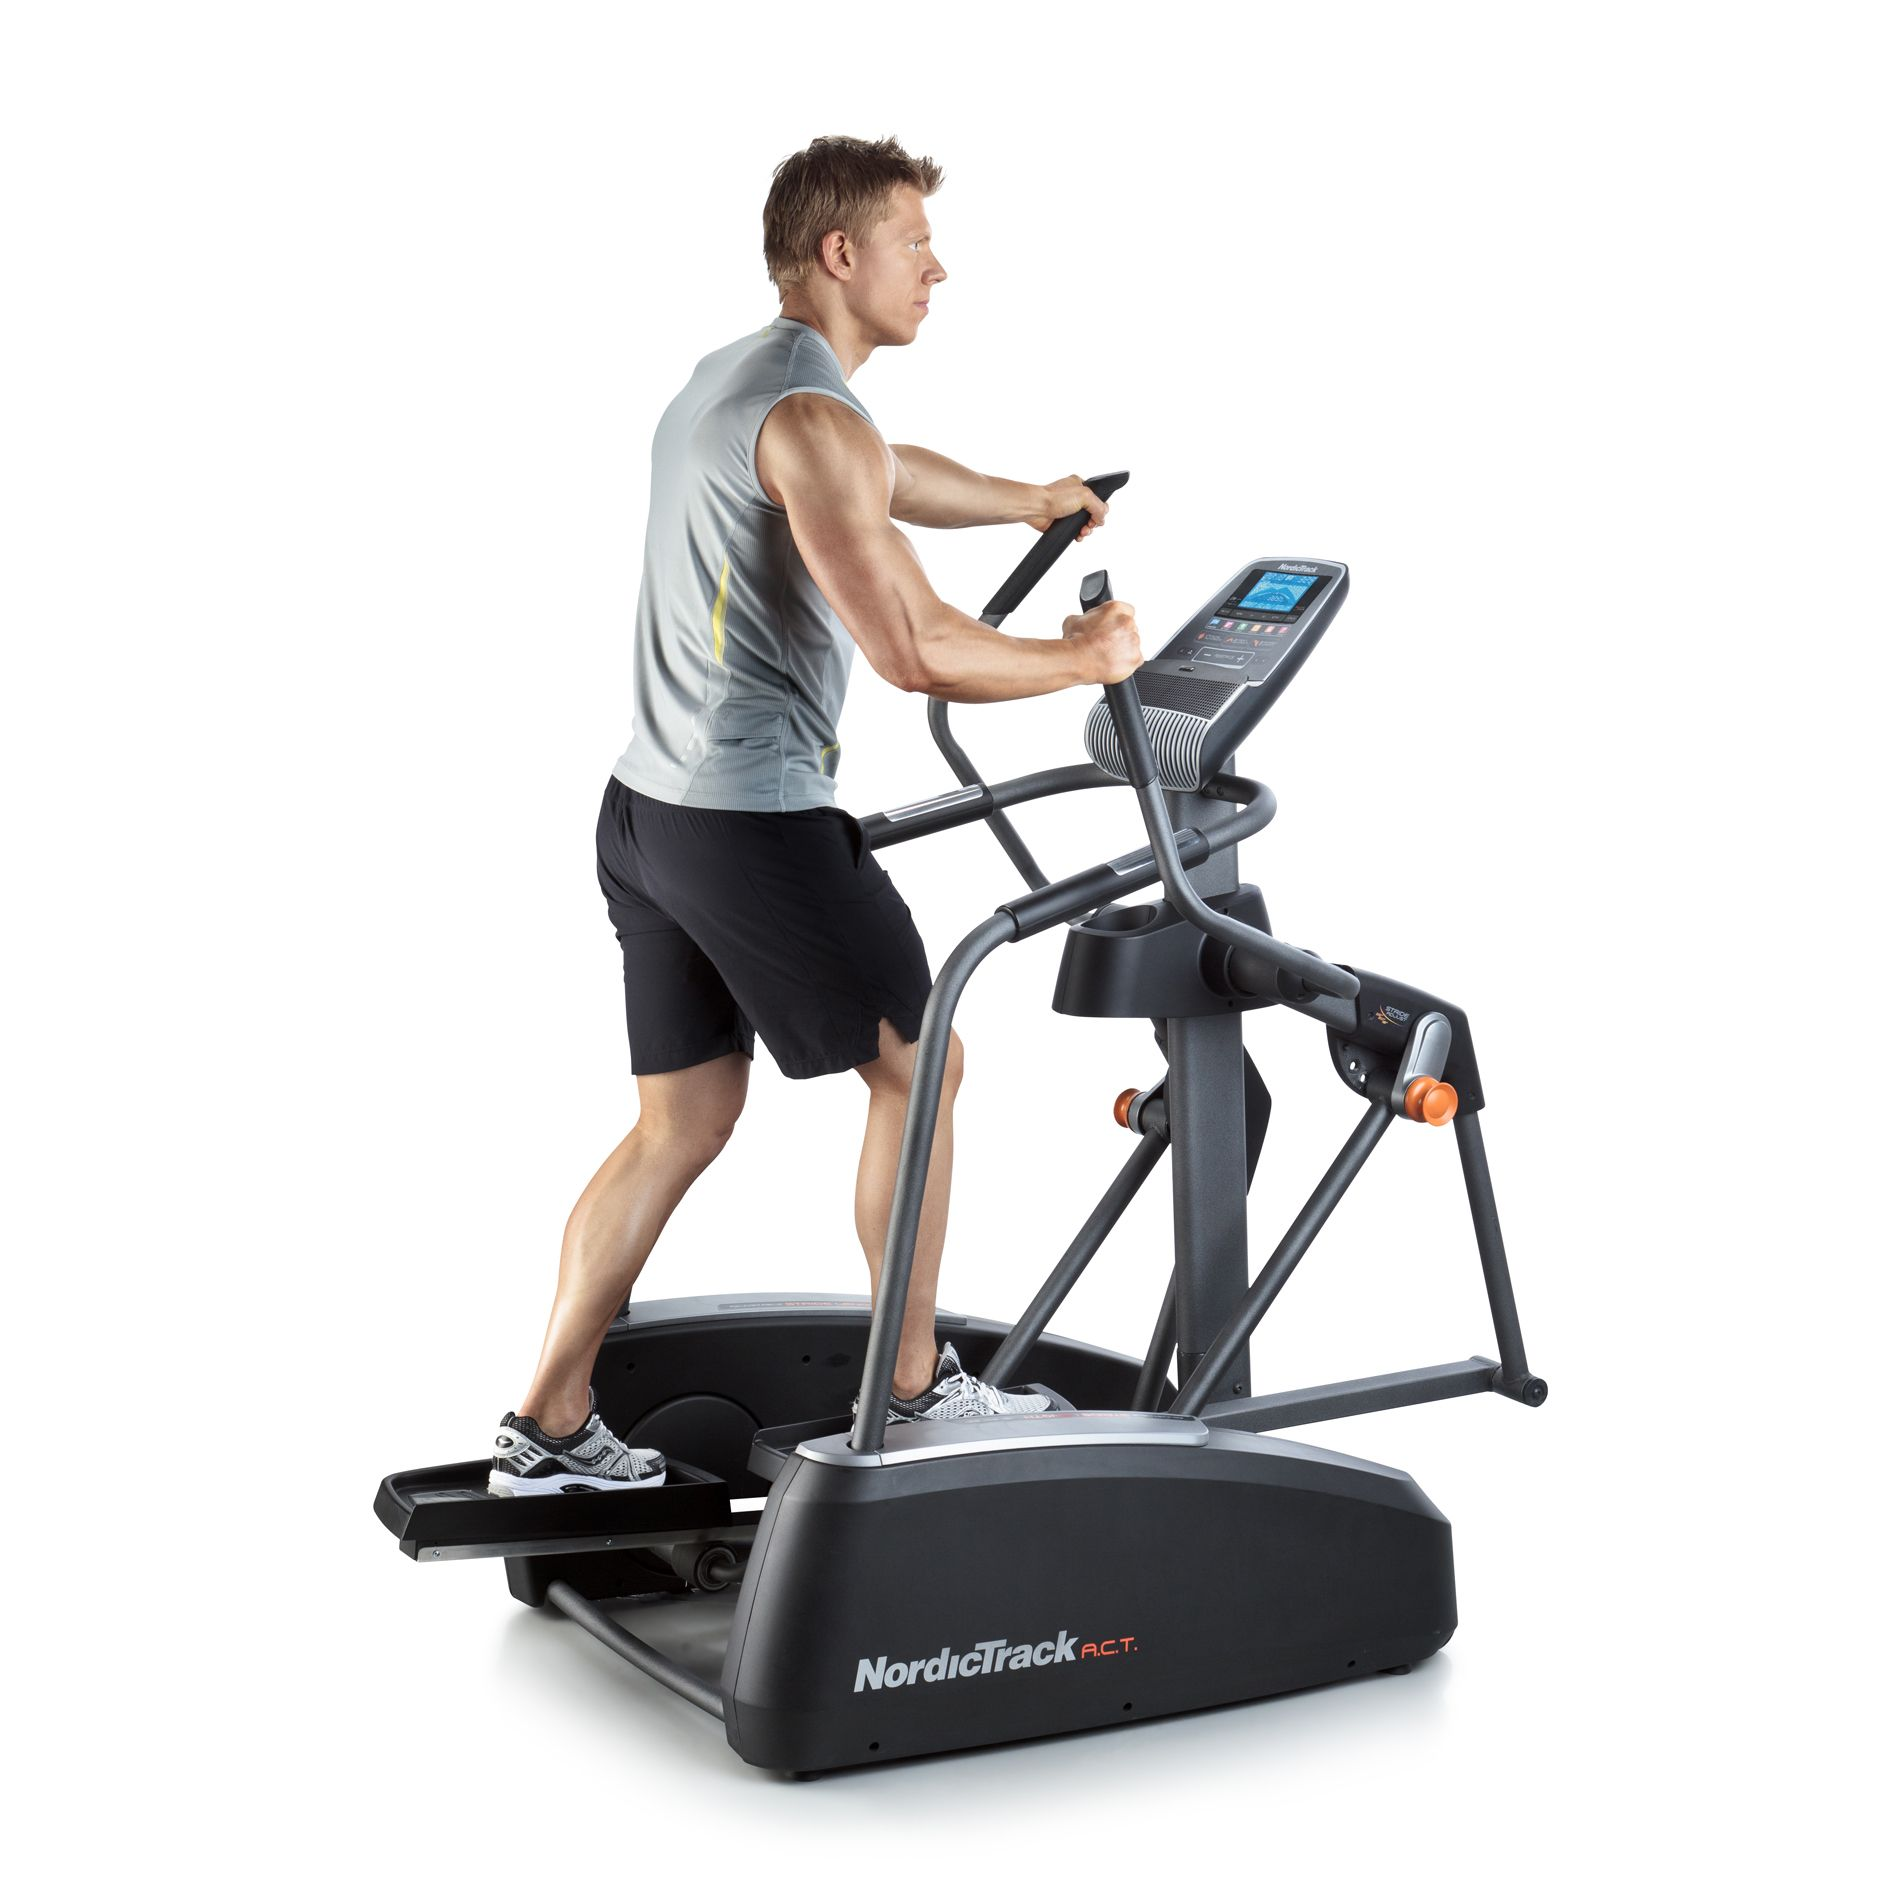 NordicTrack A.C.T. Elliptical Trainer